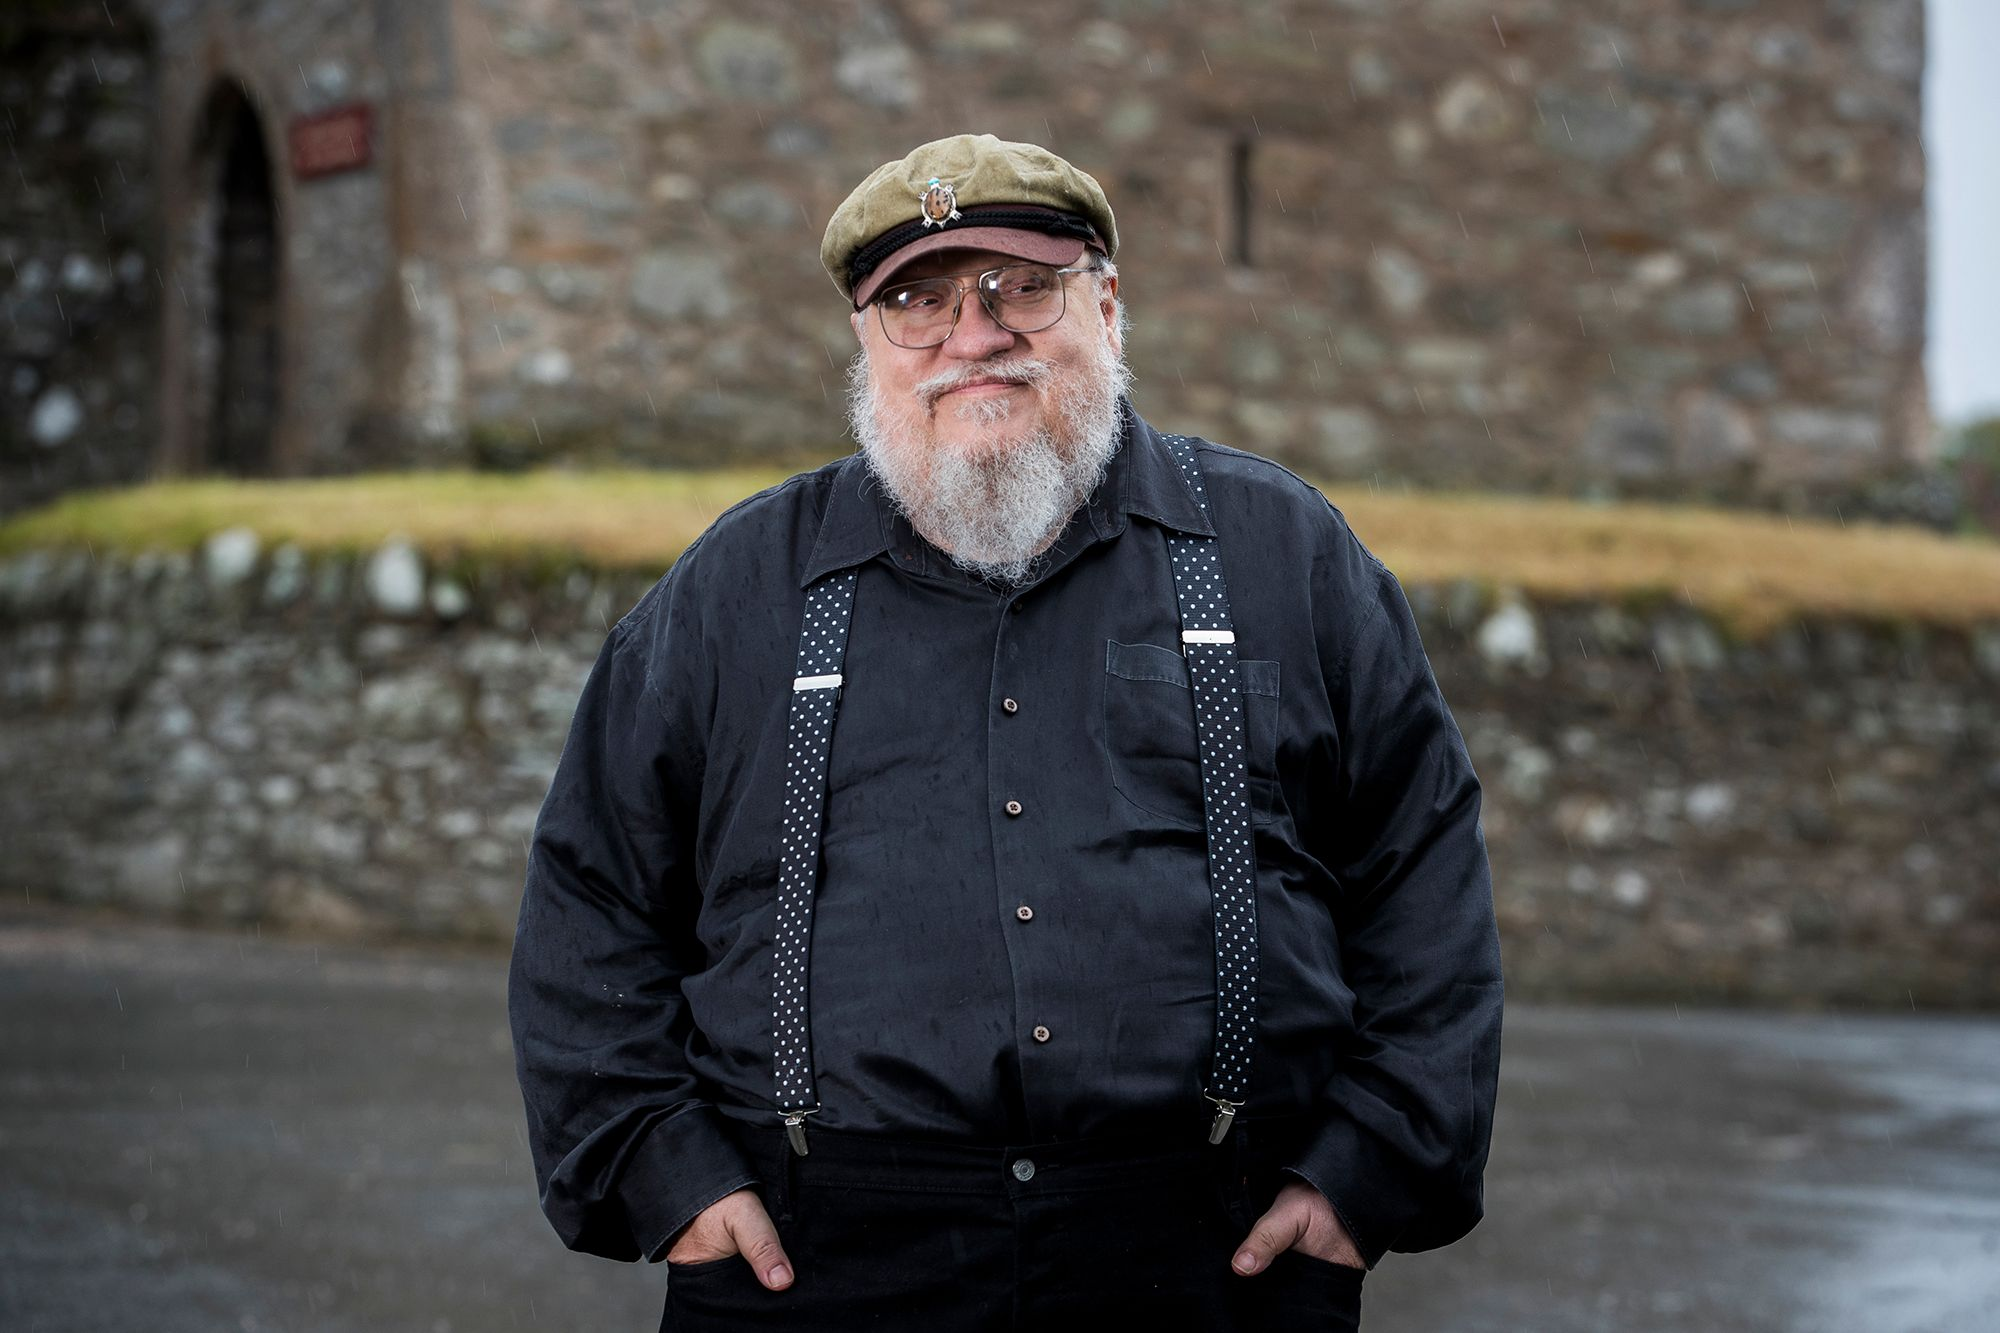 The Winds of Winter and ASOIAF Legacy by George RR Martin